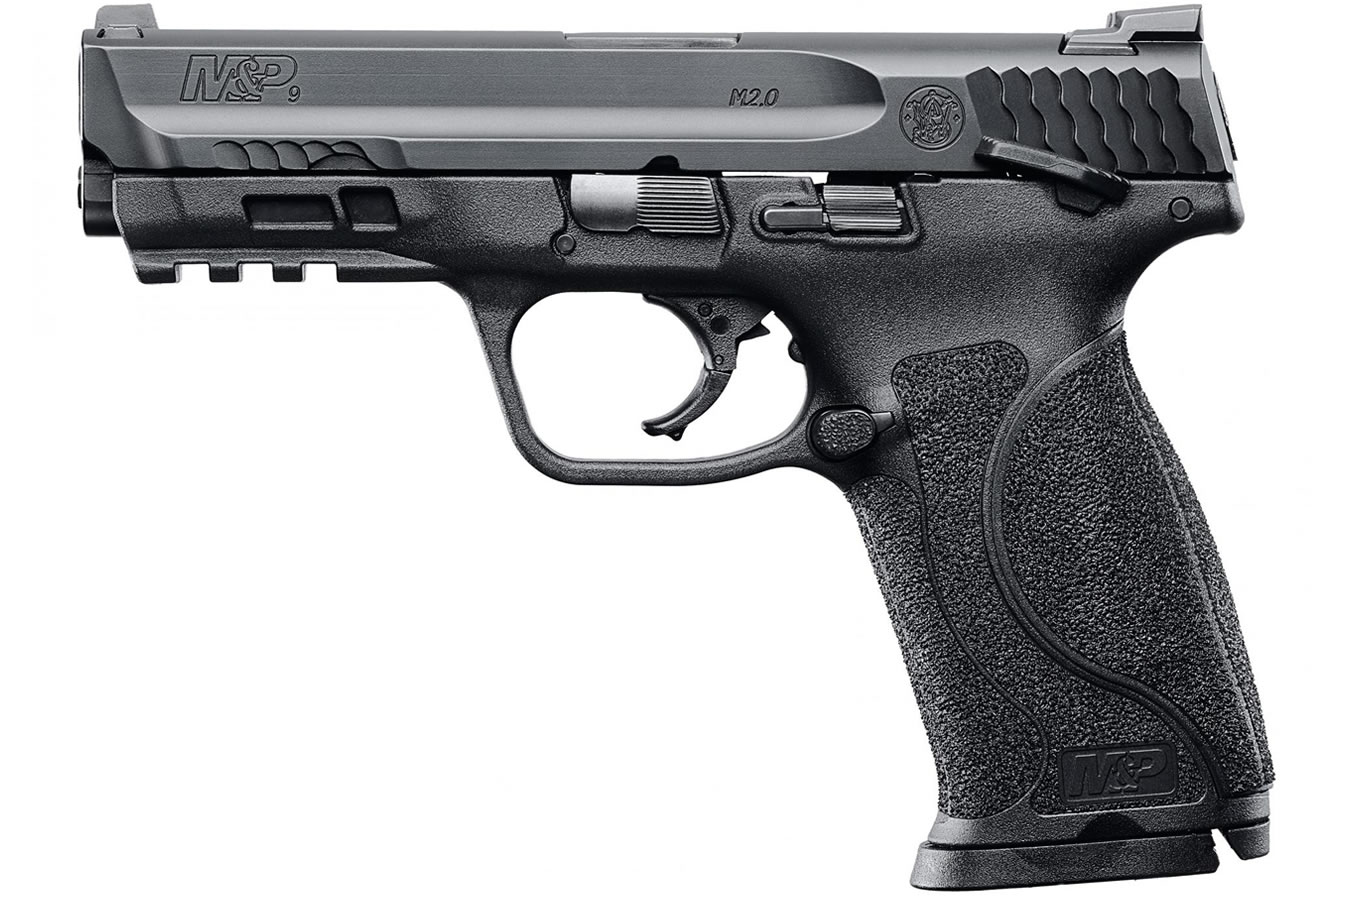 MP9 M2.0 9MM PISTOL WITH THUMB SAFETY